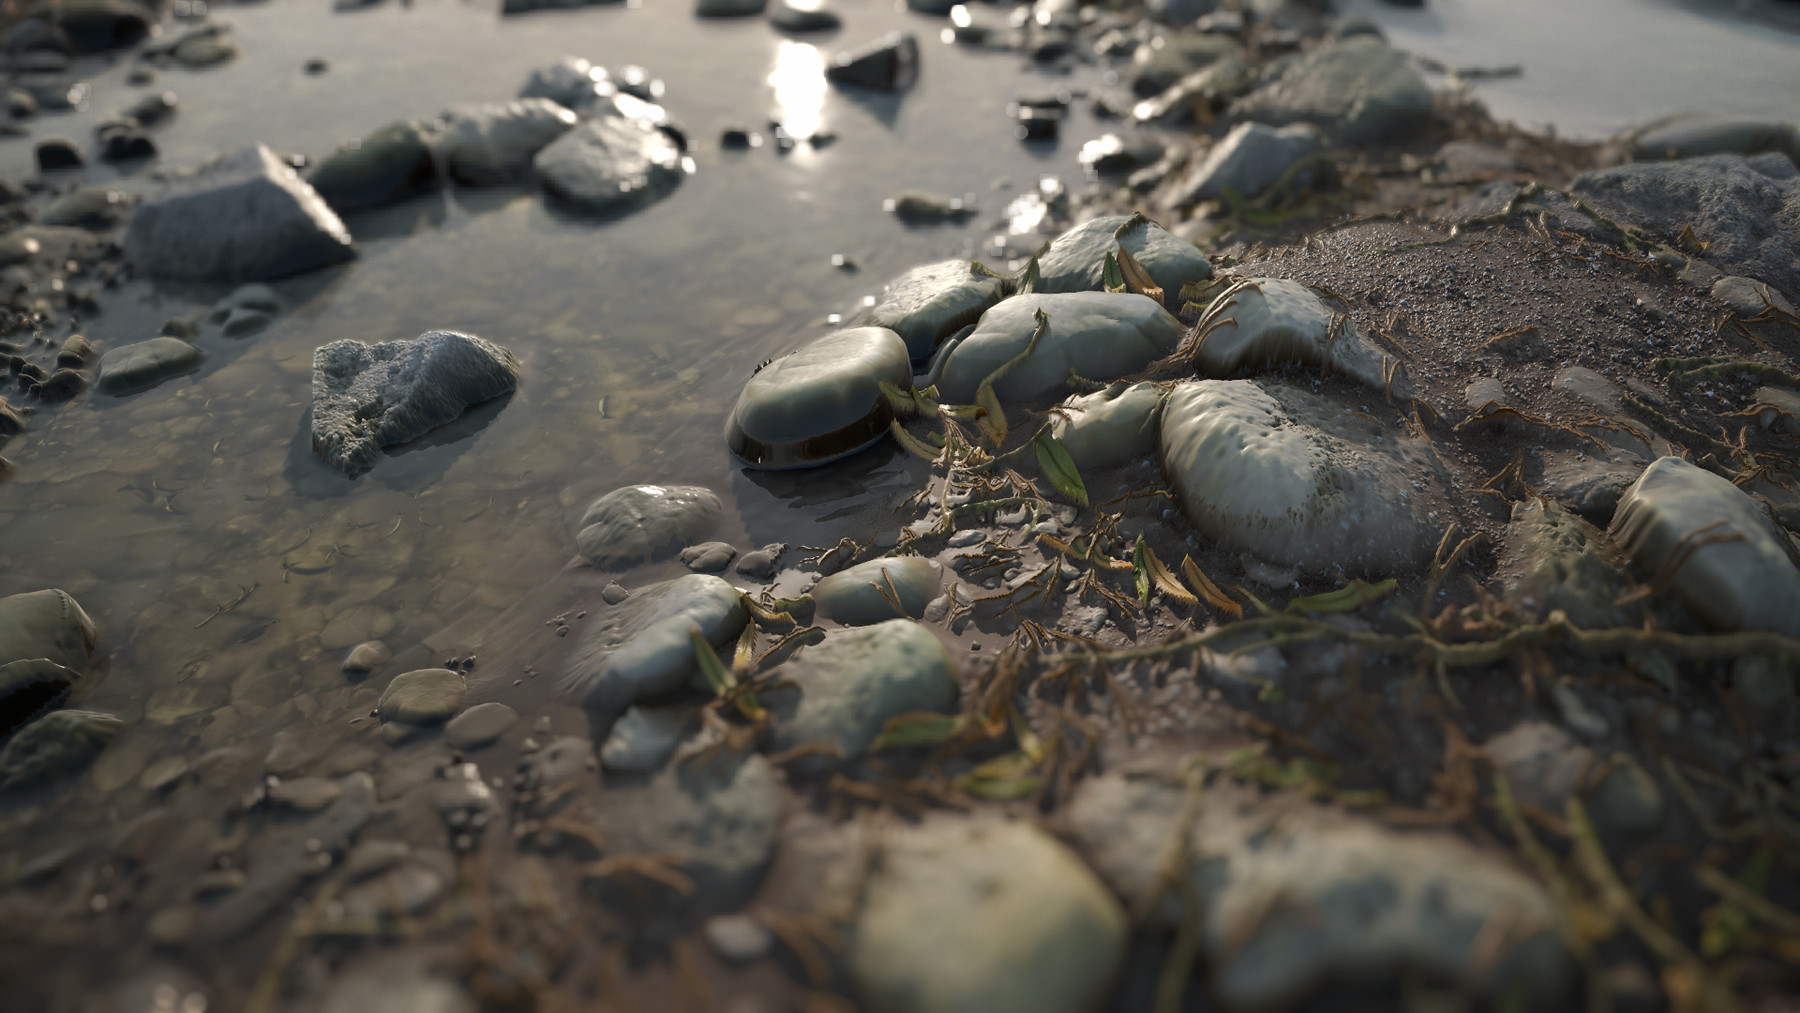 close up of realistic rocky biome